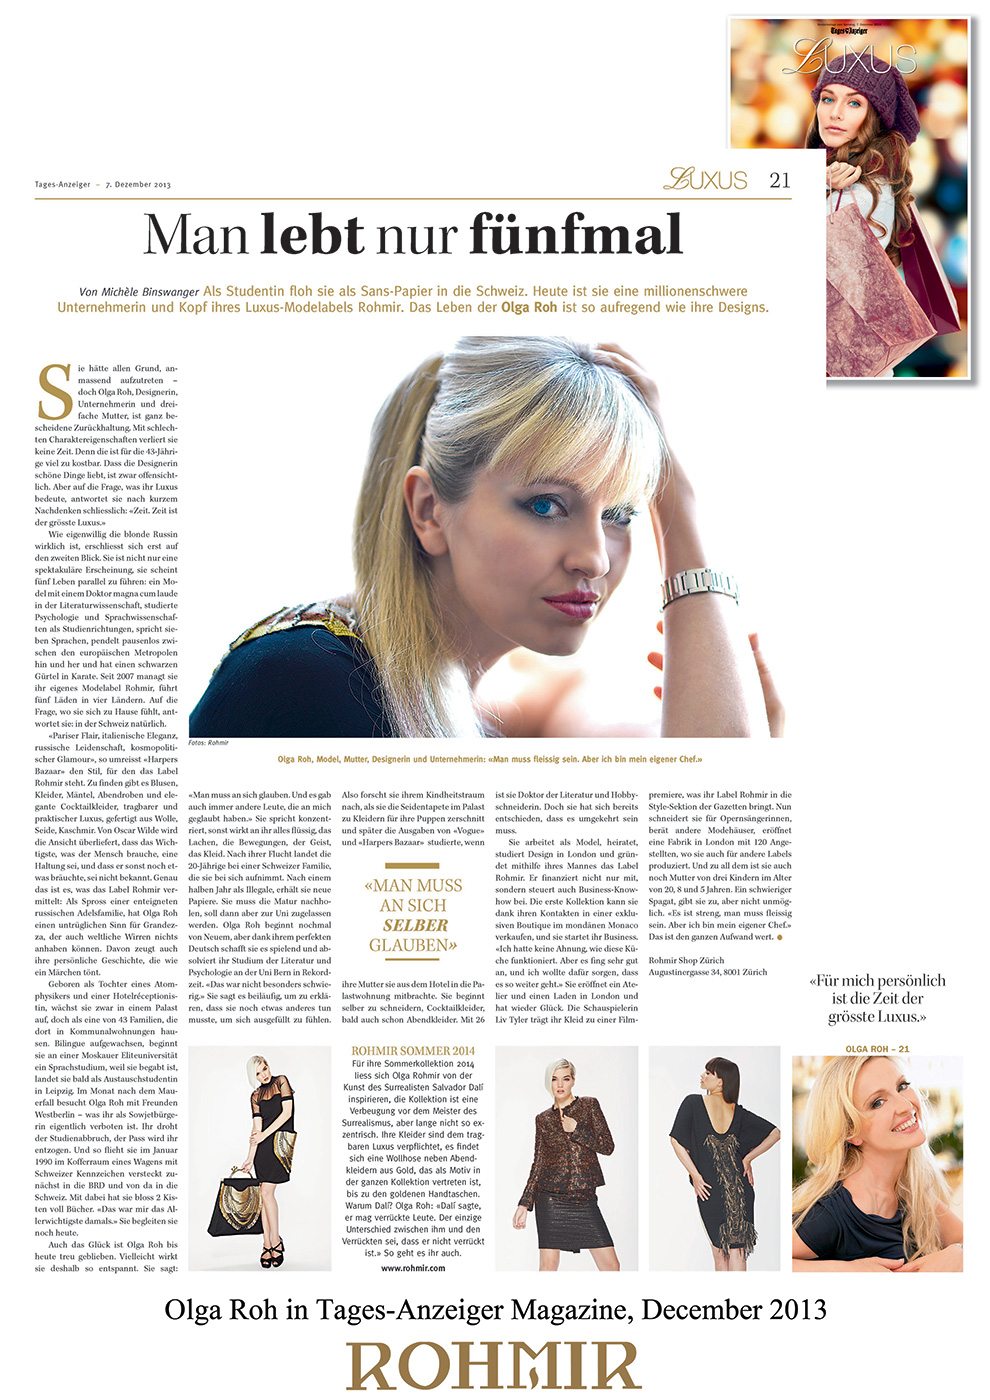 Olga-Roh-in-Tages-Anzeiger-Magazine-December-2013